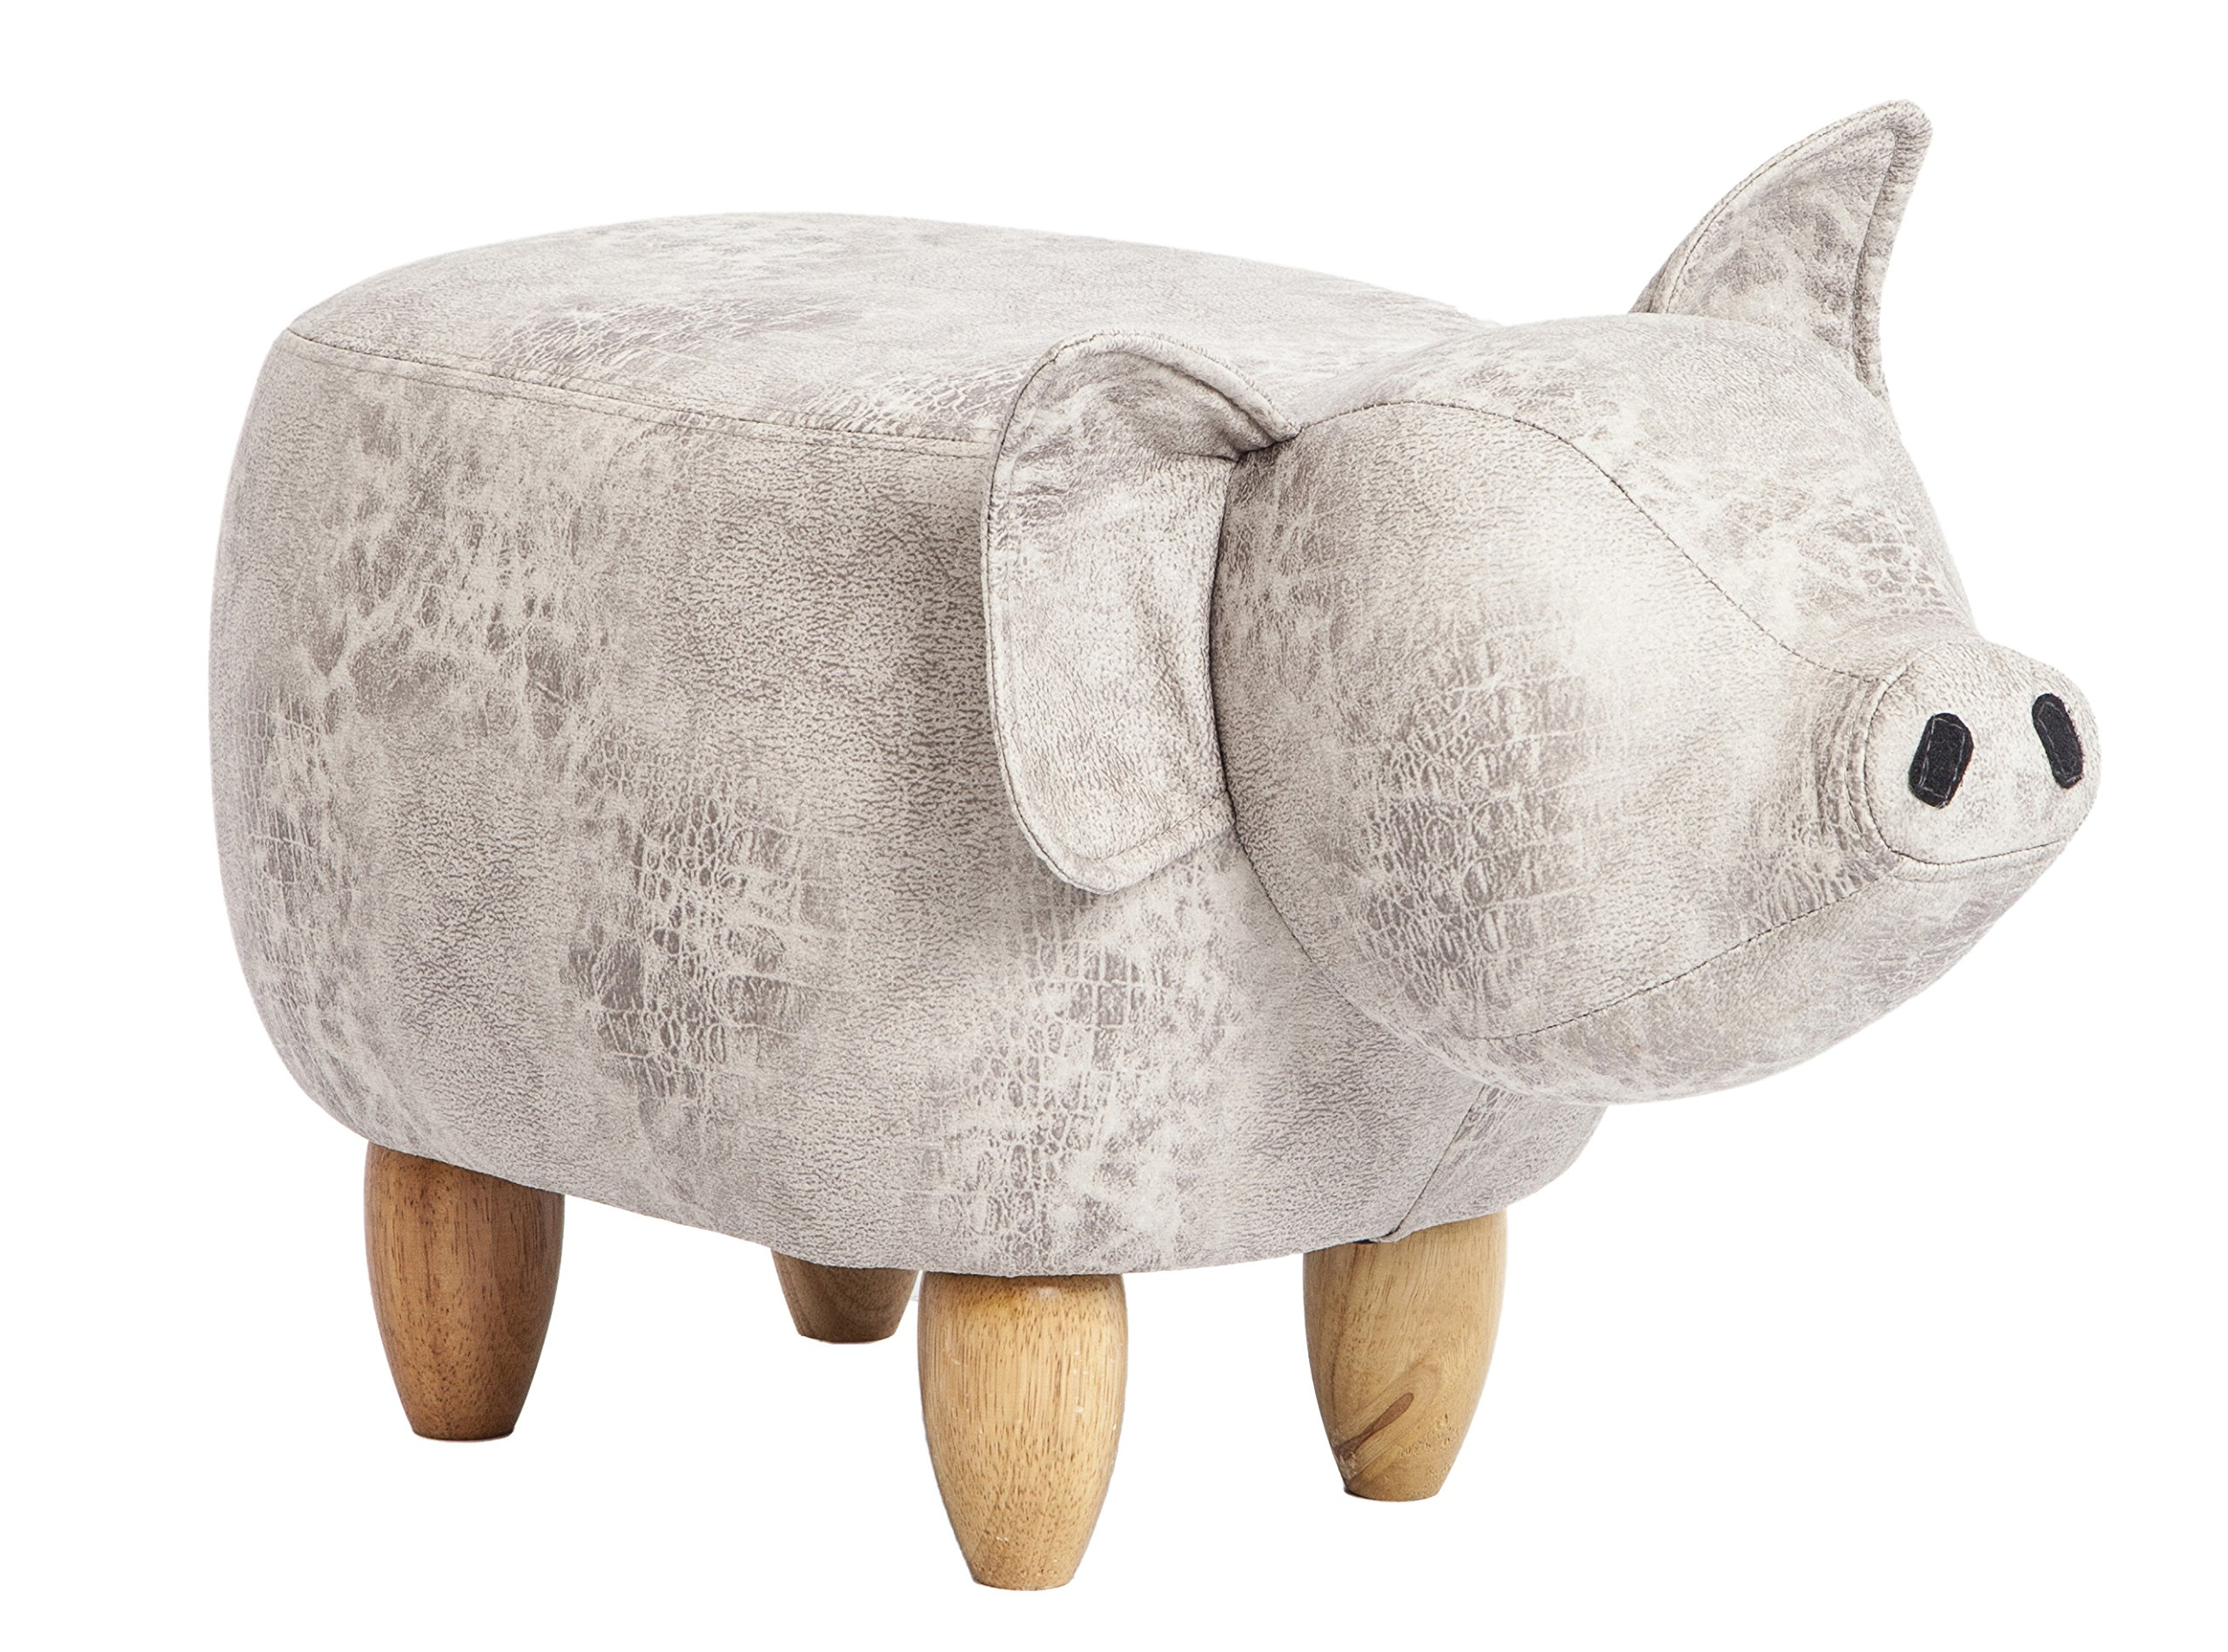 PIQUU Padded Soft Pig Ottoman Footrest Stool/Bench for Kids Gift and Adults (Beige)